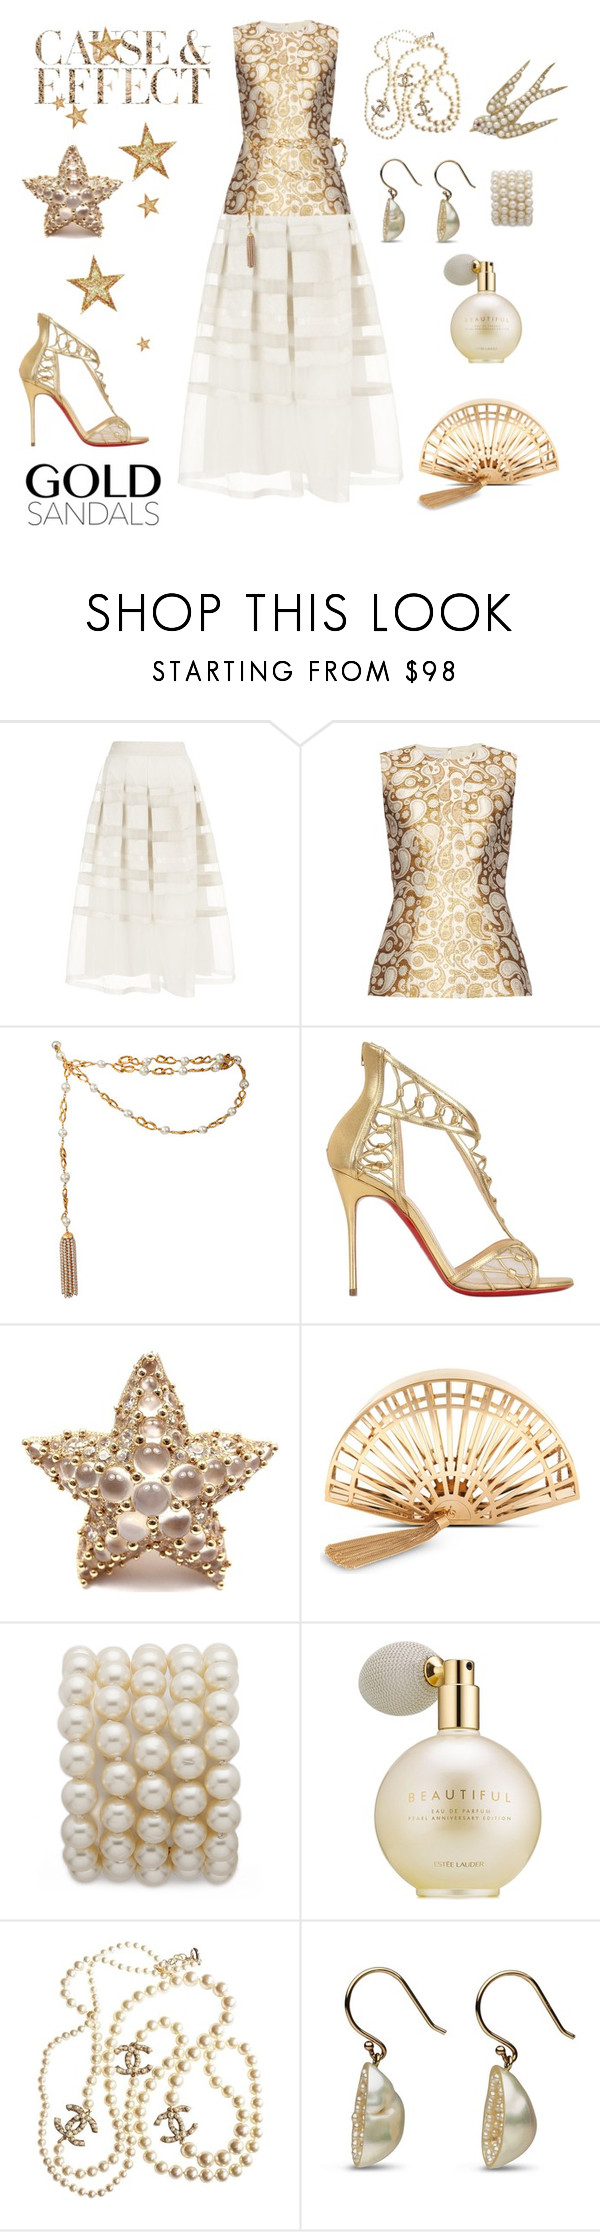 """Golden Lady"" by conch-lady ❤ liked on Polyvore featuring Temperley London, STELLA McCARTNEY, Chanel, Envi, Christian Louboutin, Pomellato, Charlotte Olympia and Estée Lauder"